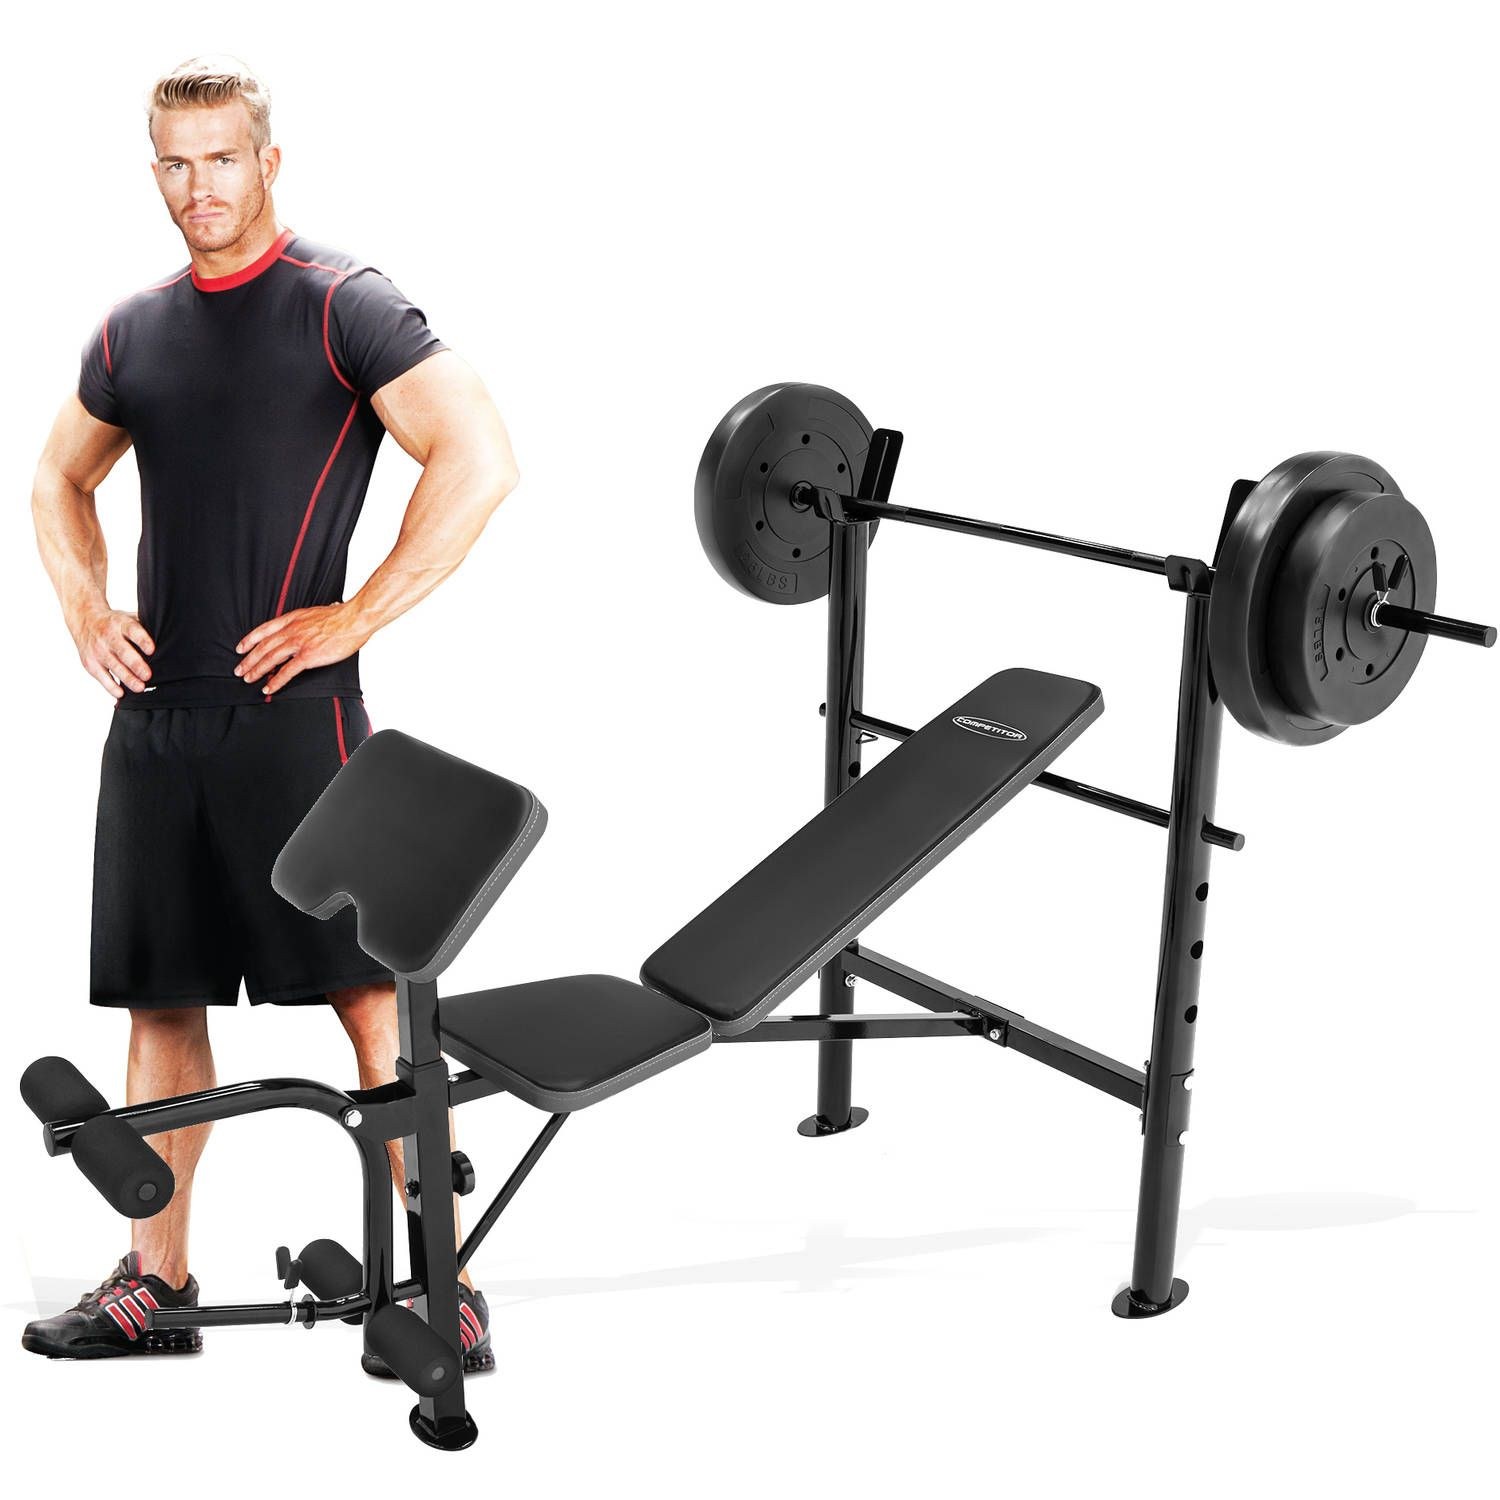 Marcy Competitor Combo Bench With 80 Lbs Weight Set Cb 20110 Deal Best Fitness Equipments